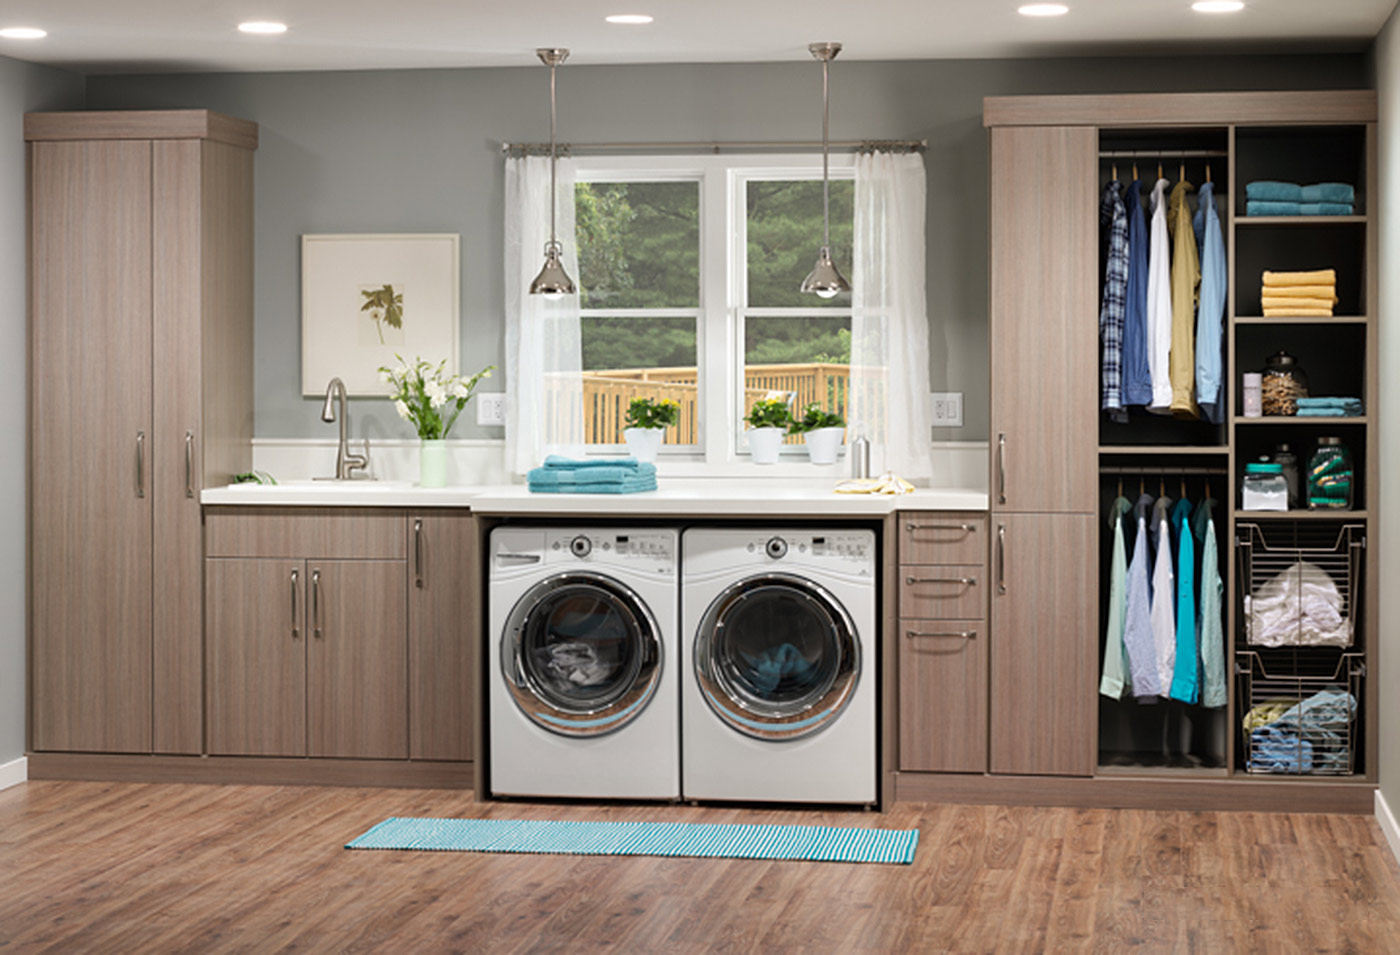 Finished Laundry Room Ideas